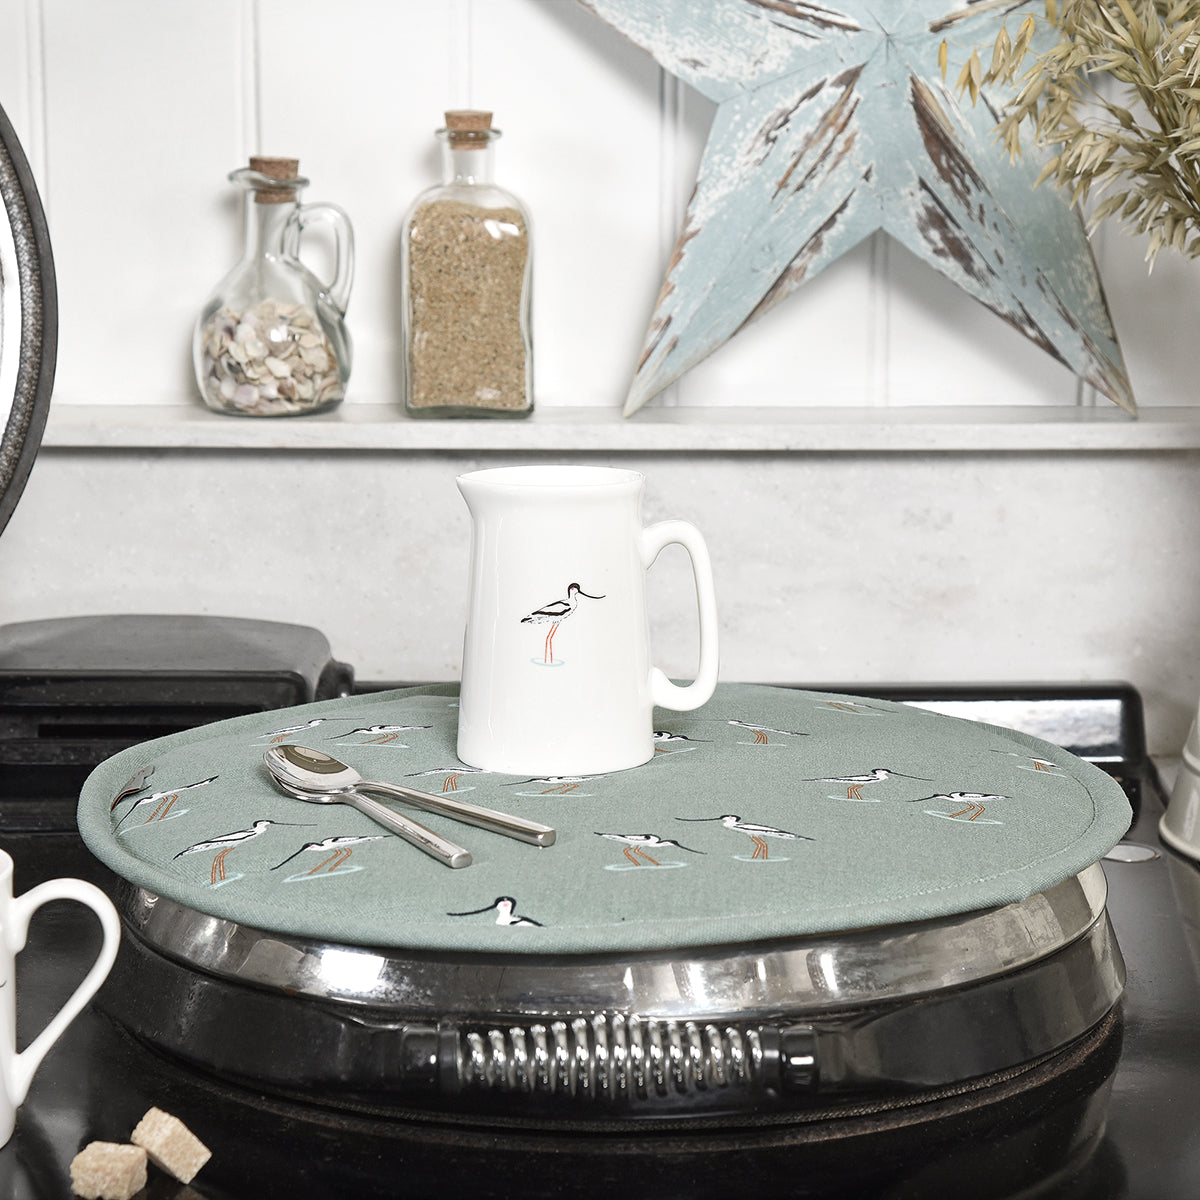 Sophie Allport Coastal Birds Circular Hob Cover for AGA